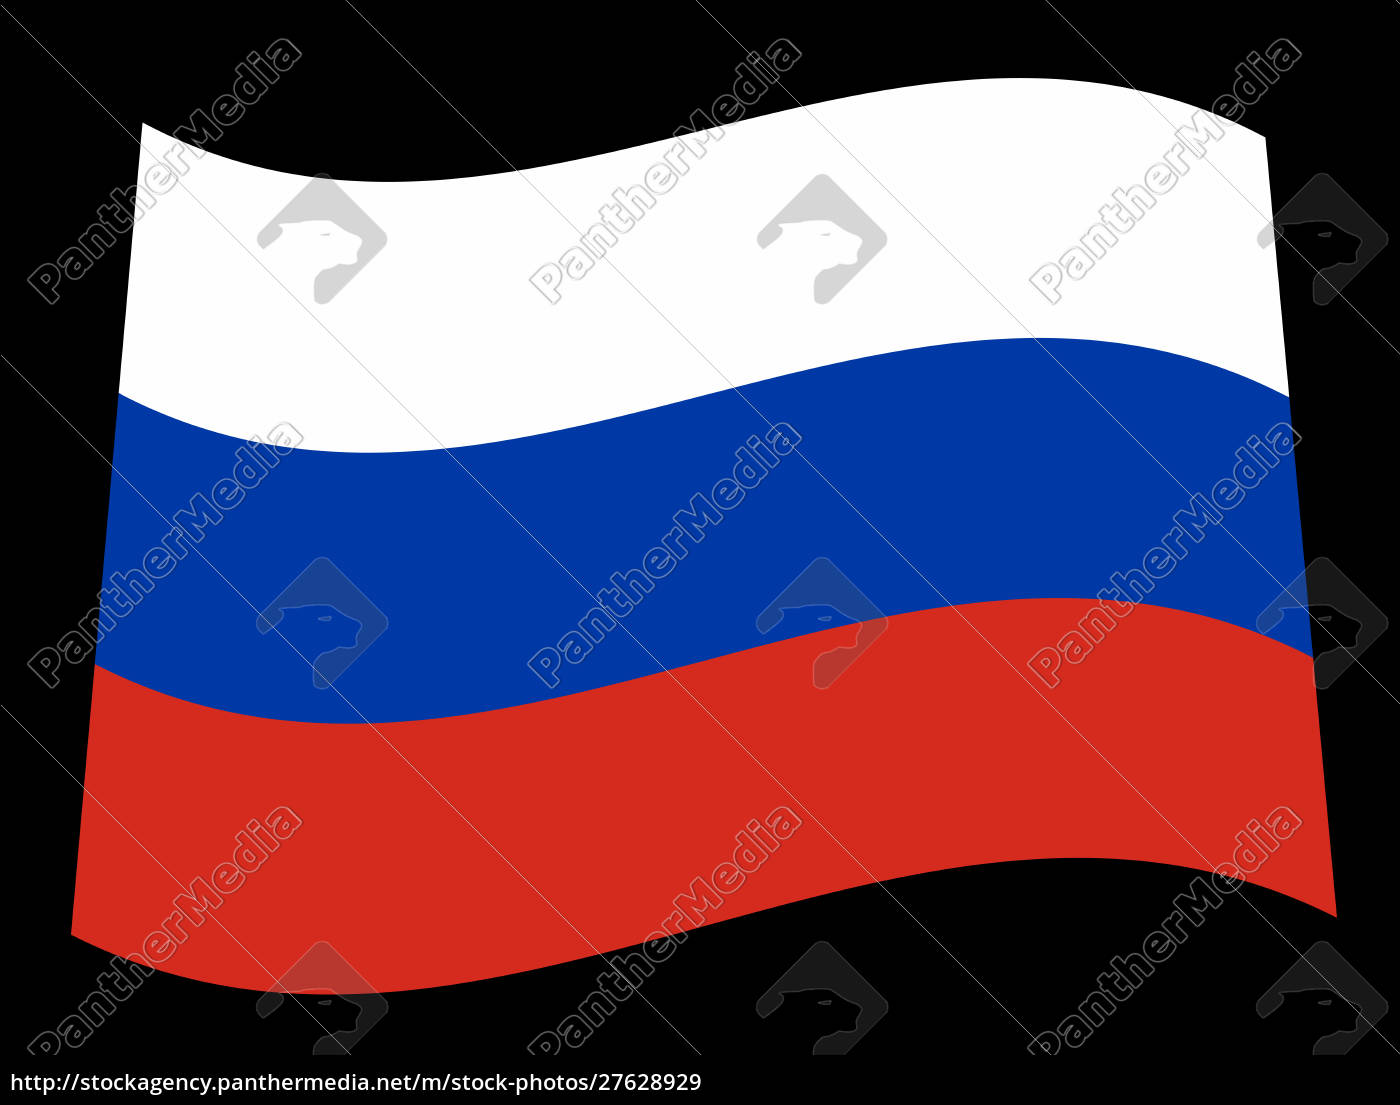 russian, flag, in, red, white, and - 27628929